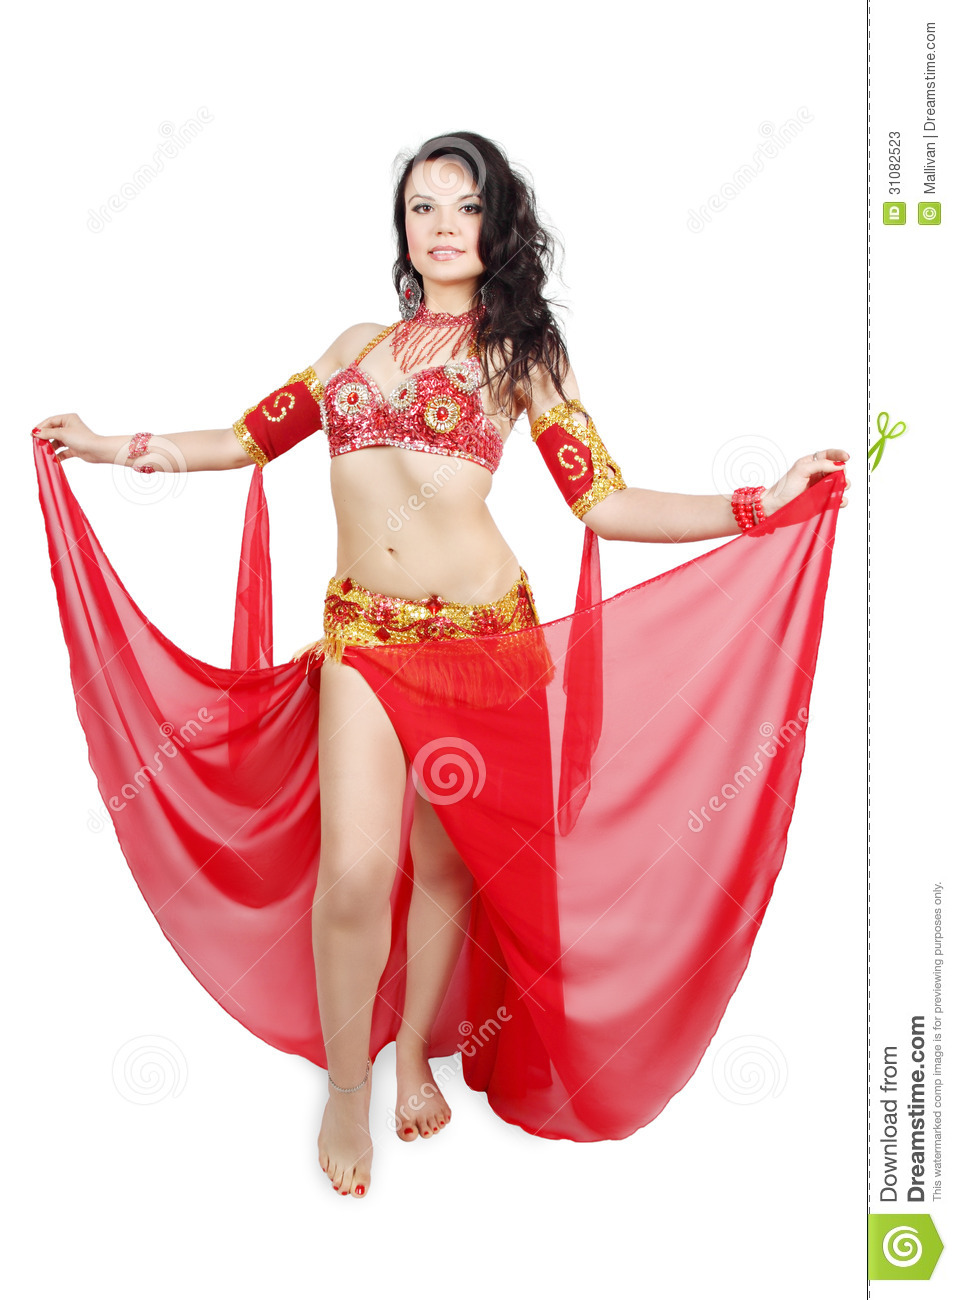 download video how to belly dance